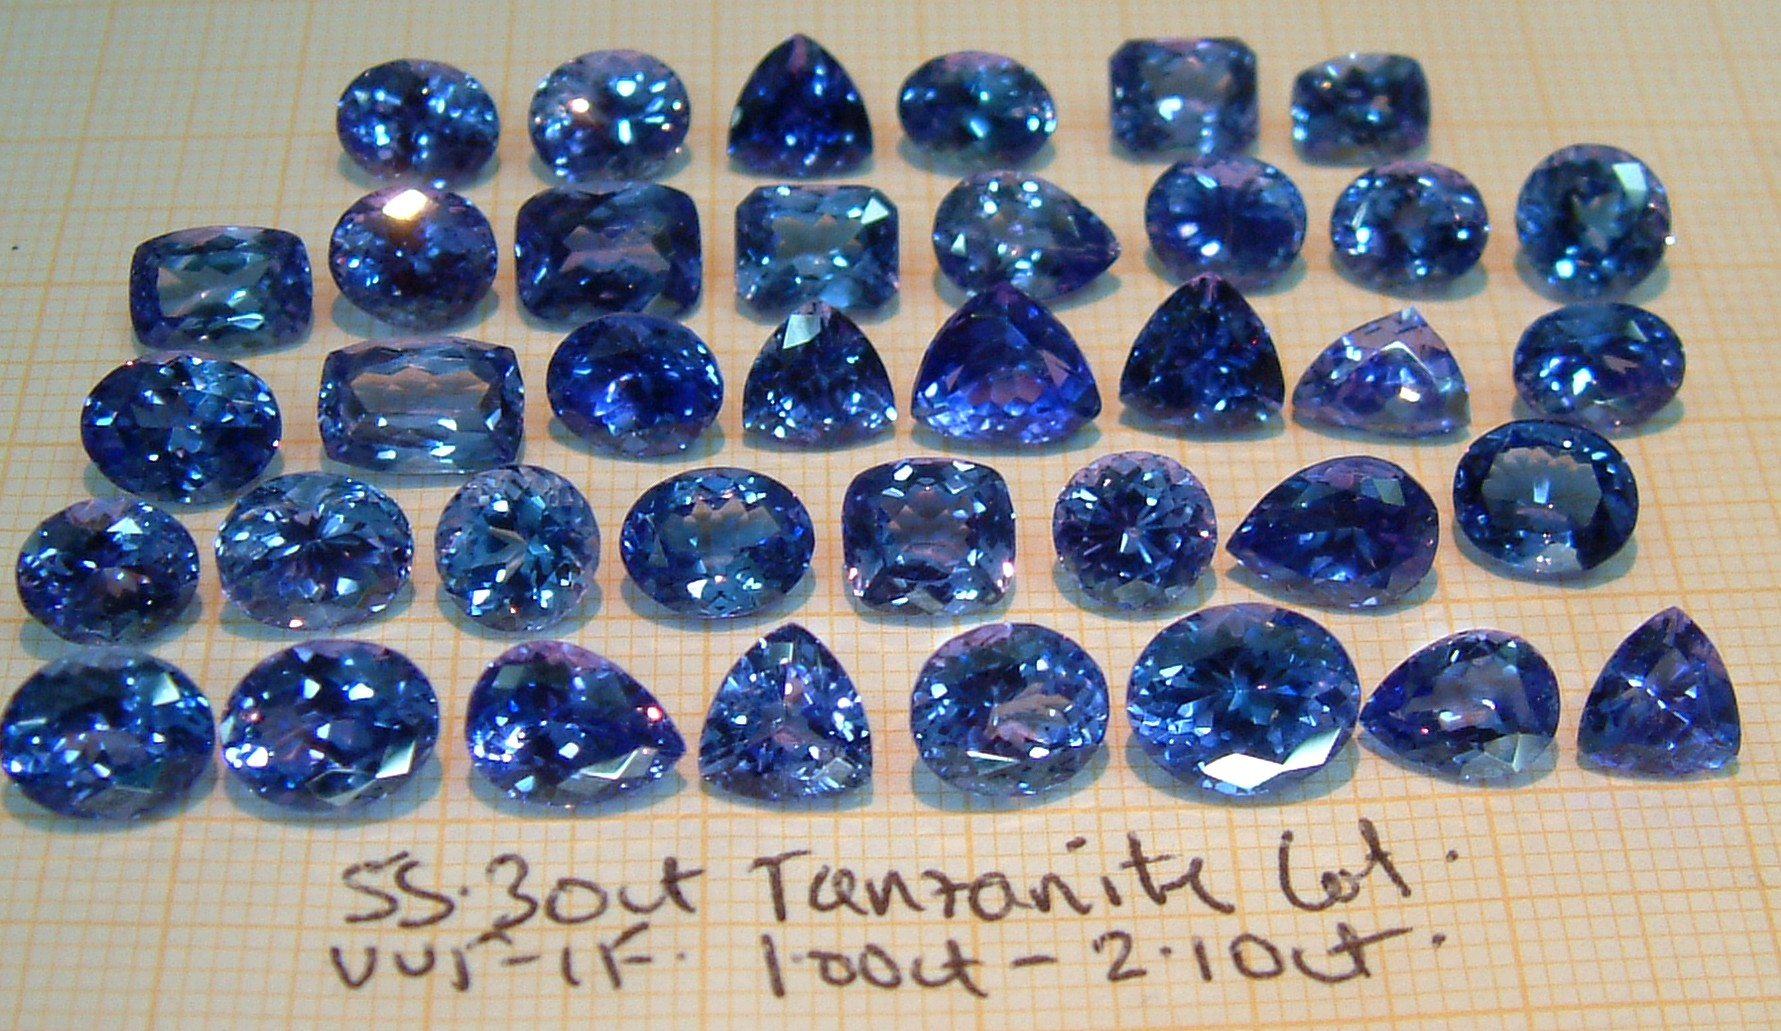 loose wuzhou and stone factory alibaba wholesale suppliers manufacturers price tanzanite showroom gemstone com at